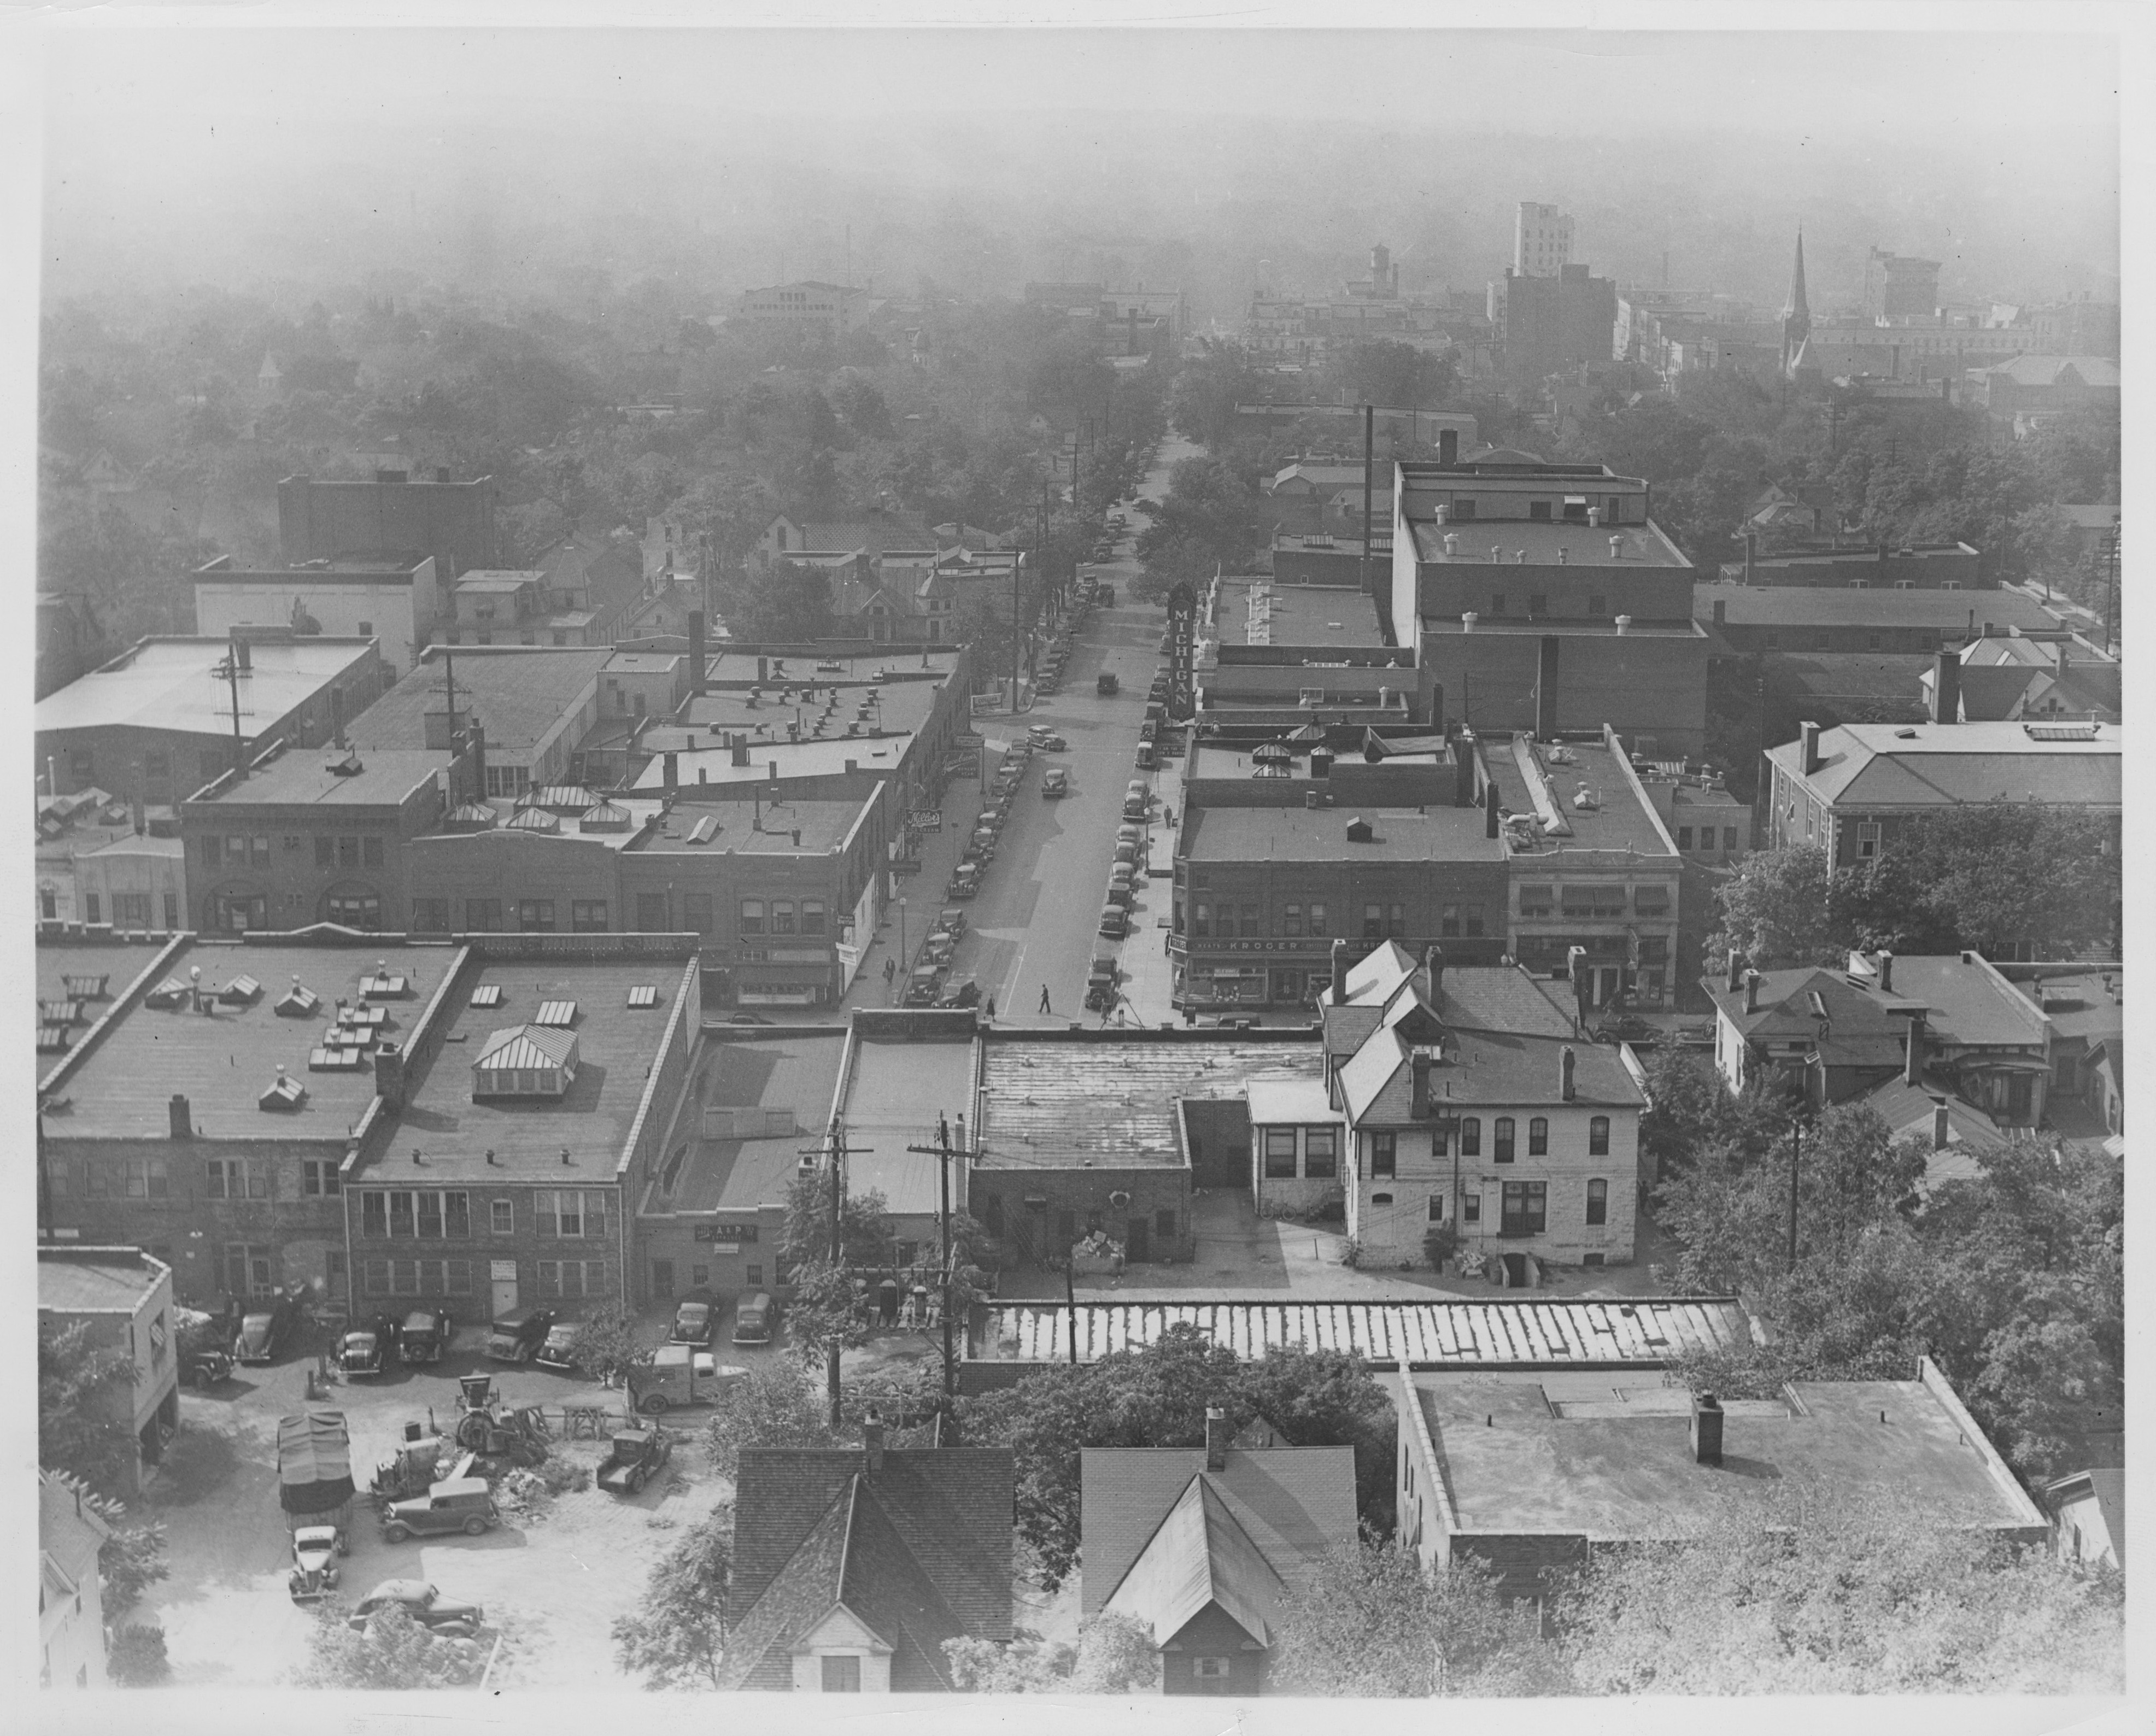 View from Burton Tower looking down Liberty St., 1938 image